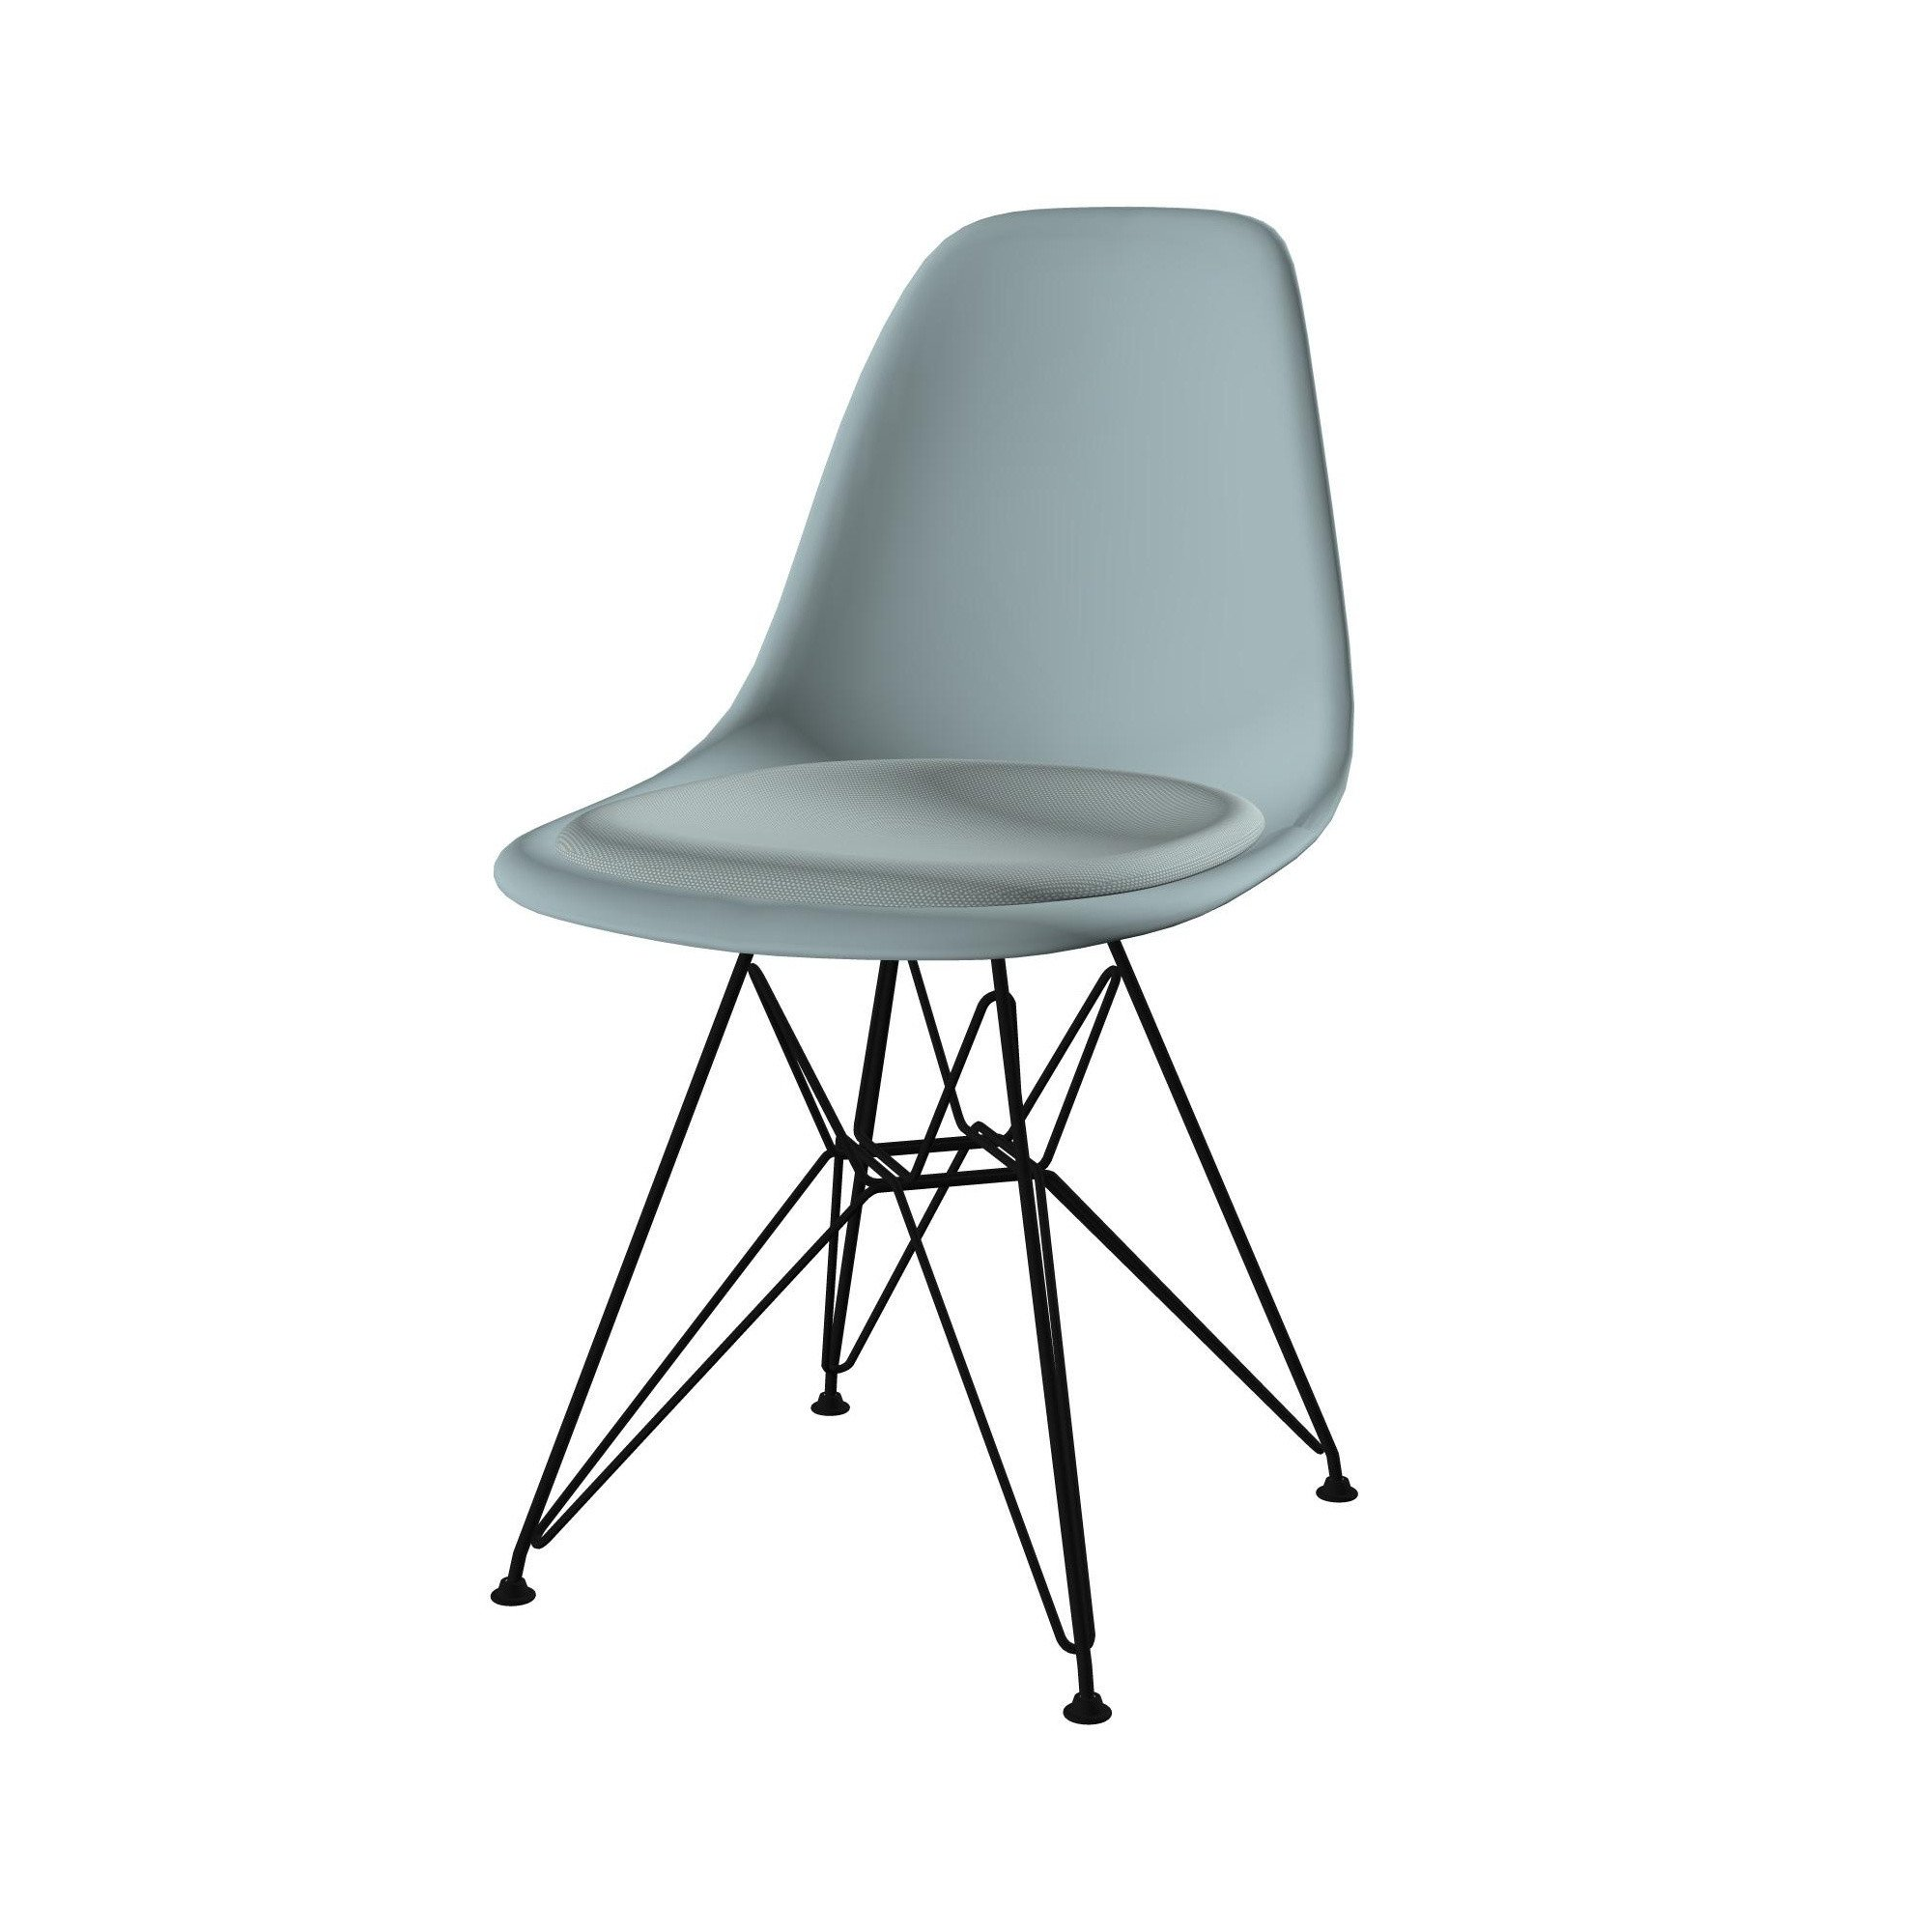 vitra eames plastic side chair dsr stuhl gepolstert. Black Bedroom Furniture Sets. Home Design Ideas